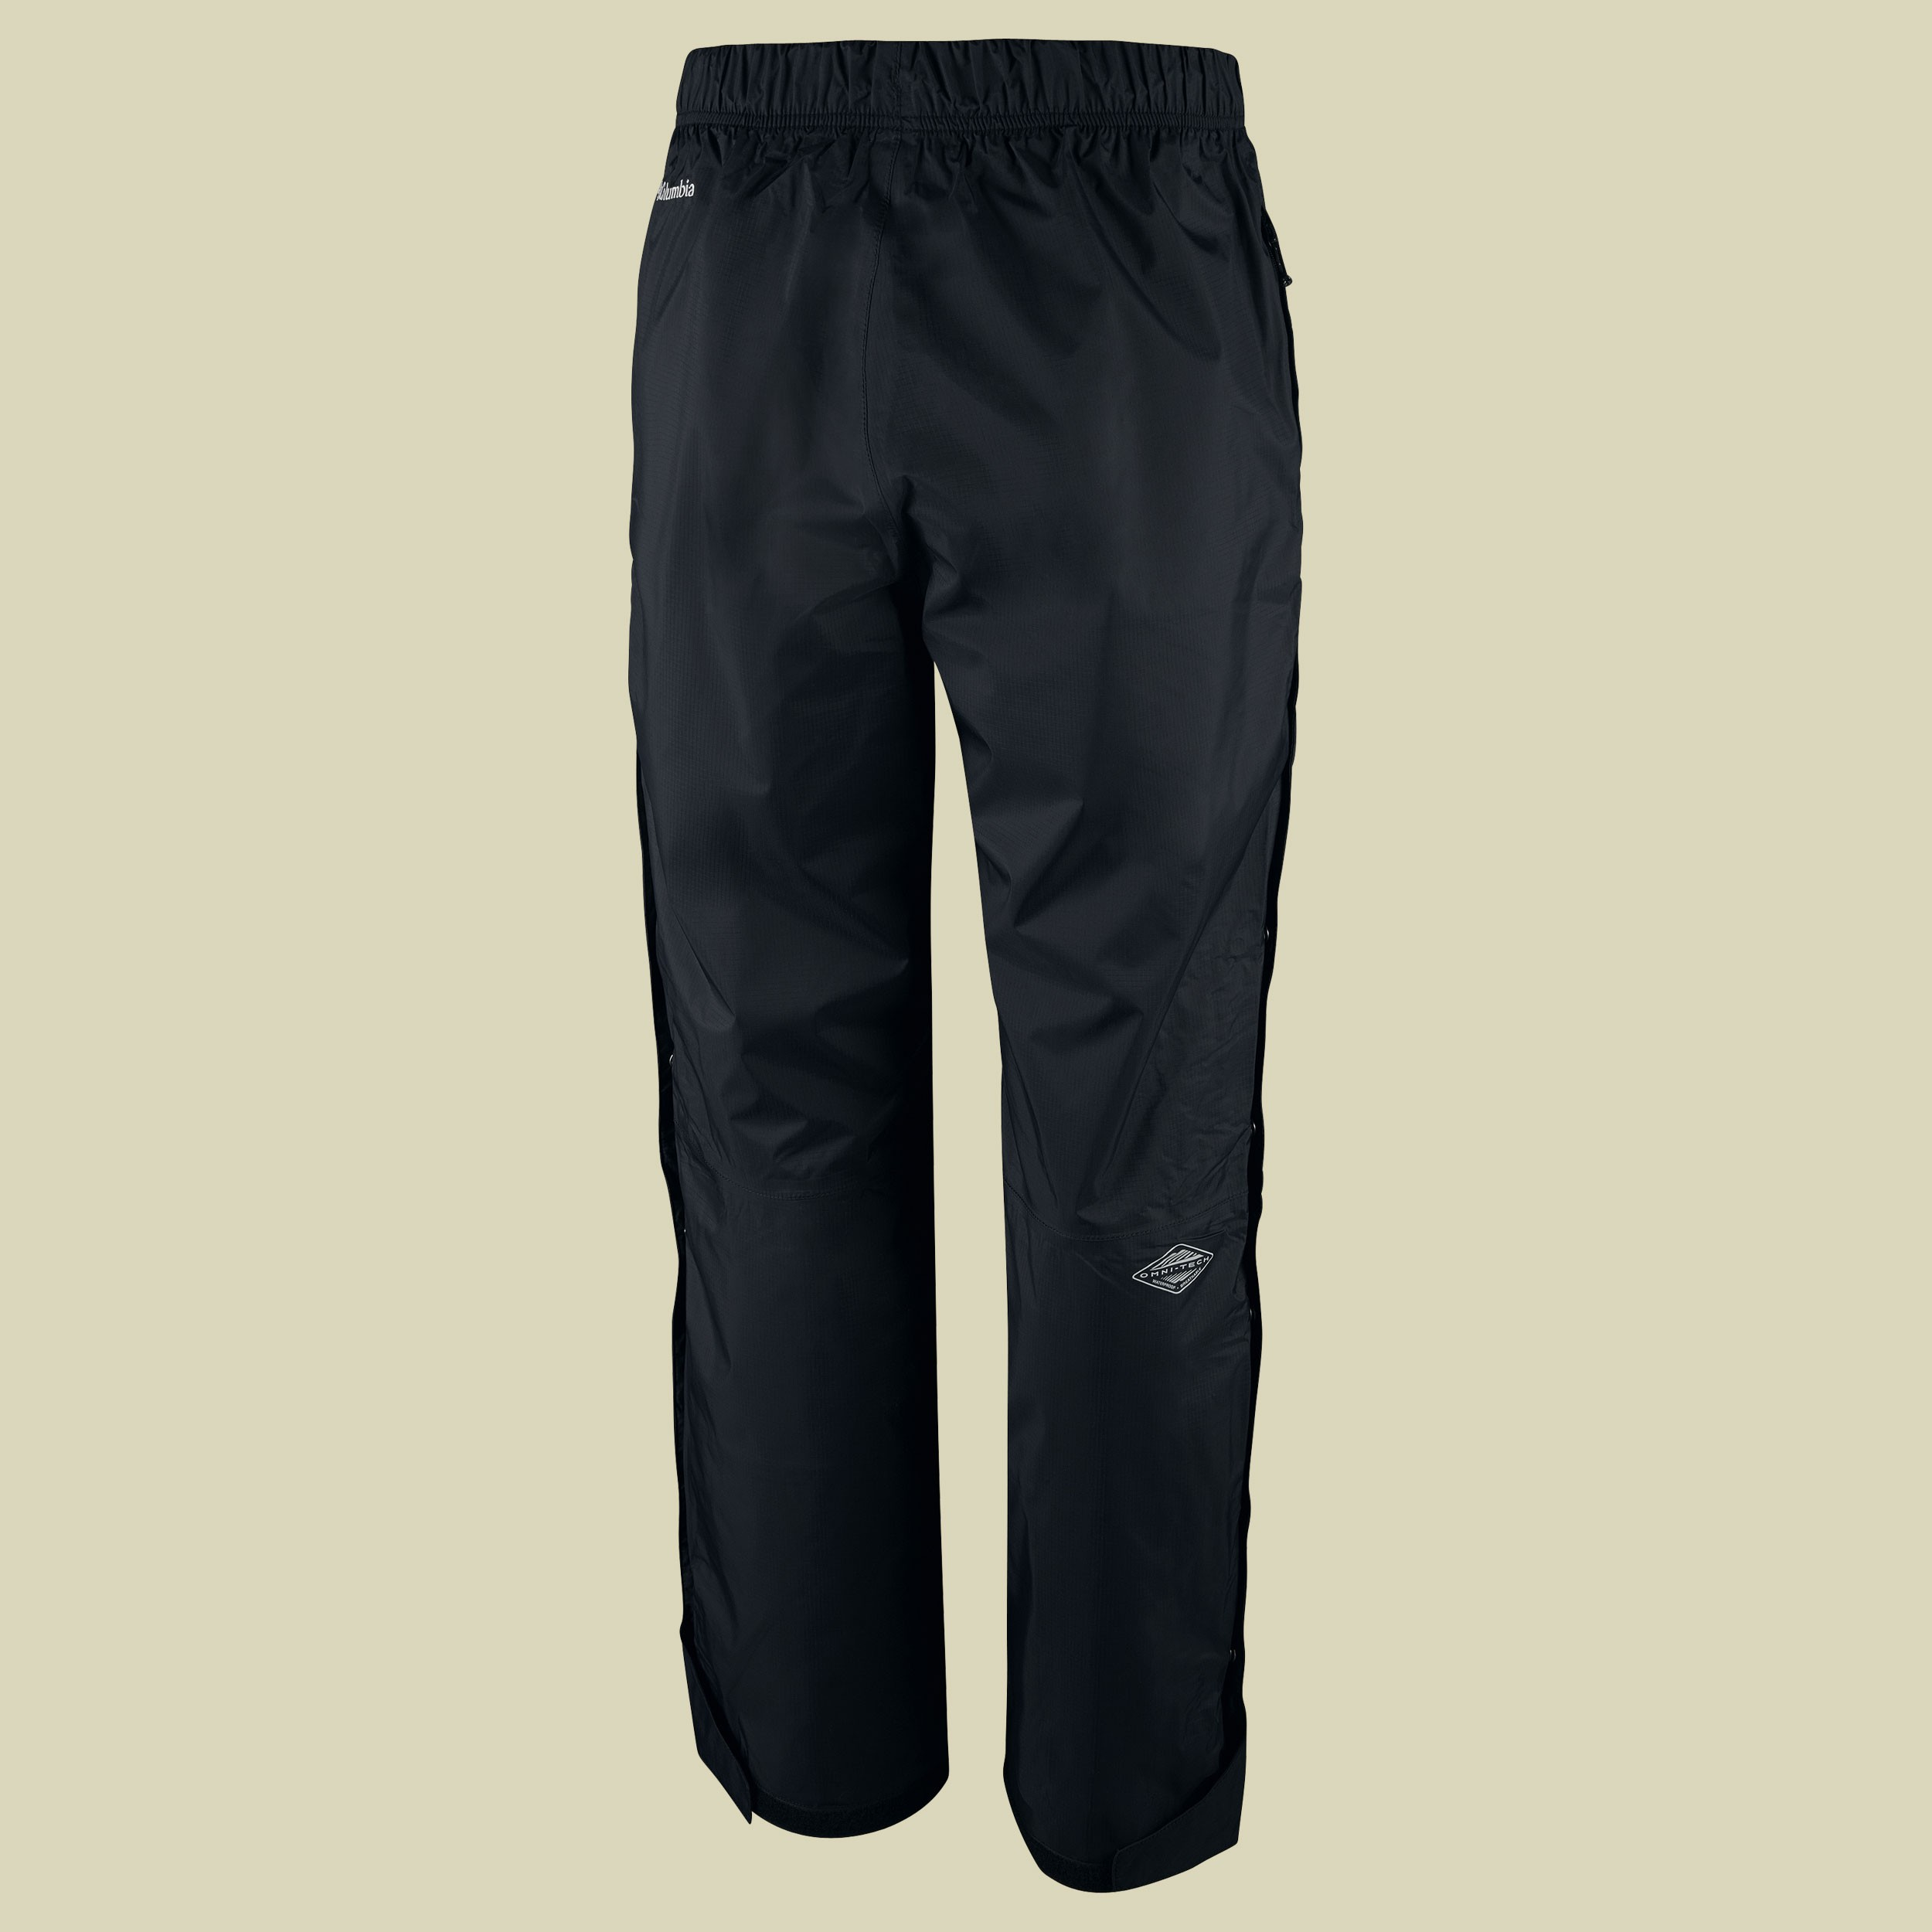 M Pouring Adventure Pant Men